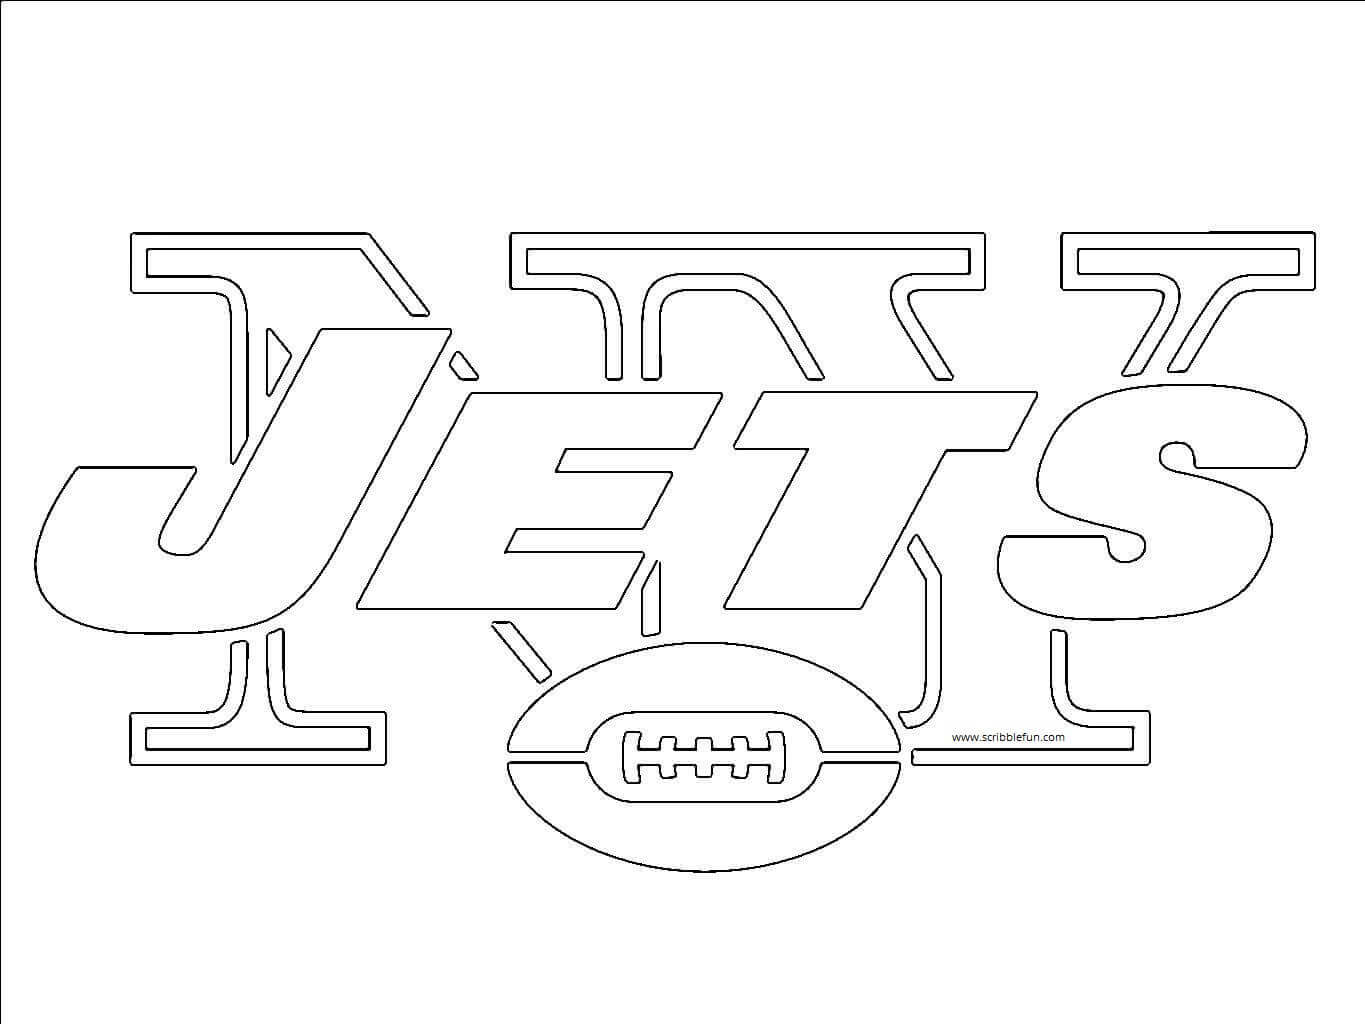 new york jets coloring pages new york jets coloring pages 2019 open coloring pages york new jets coloring pages